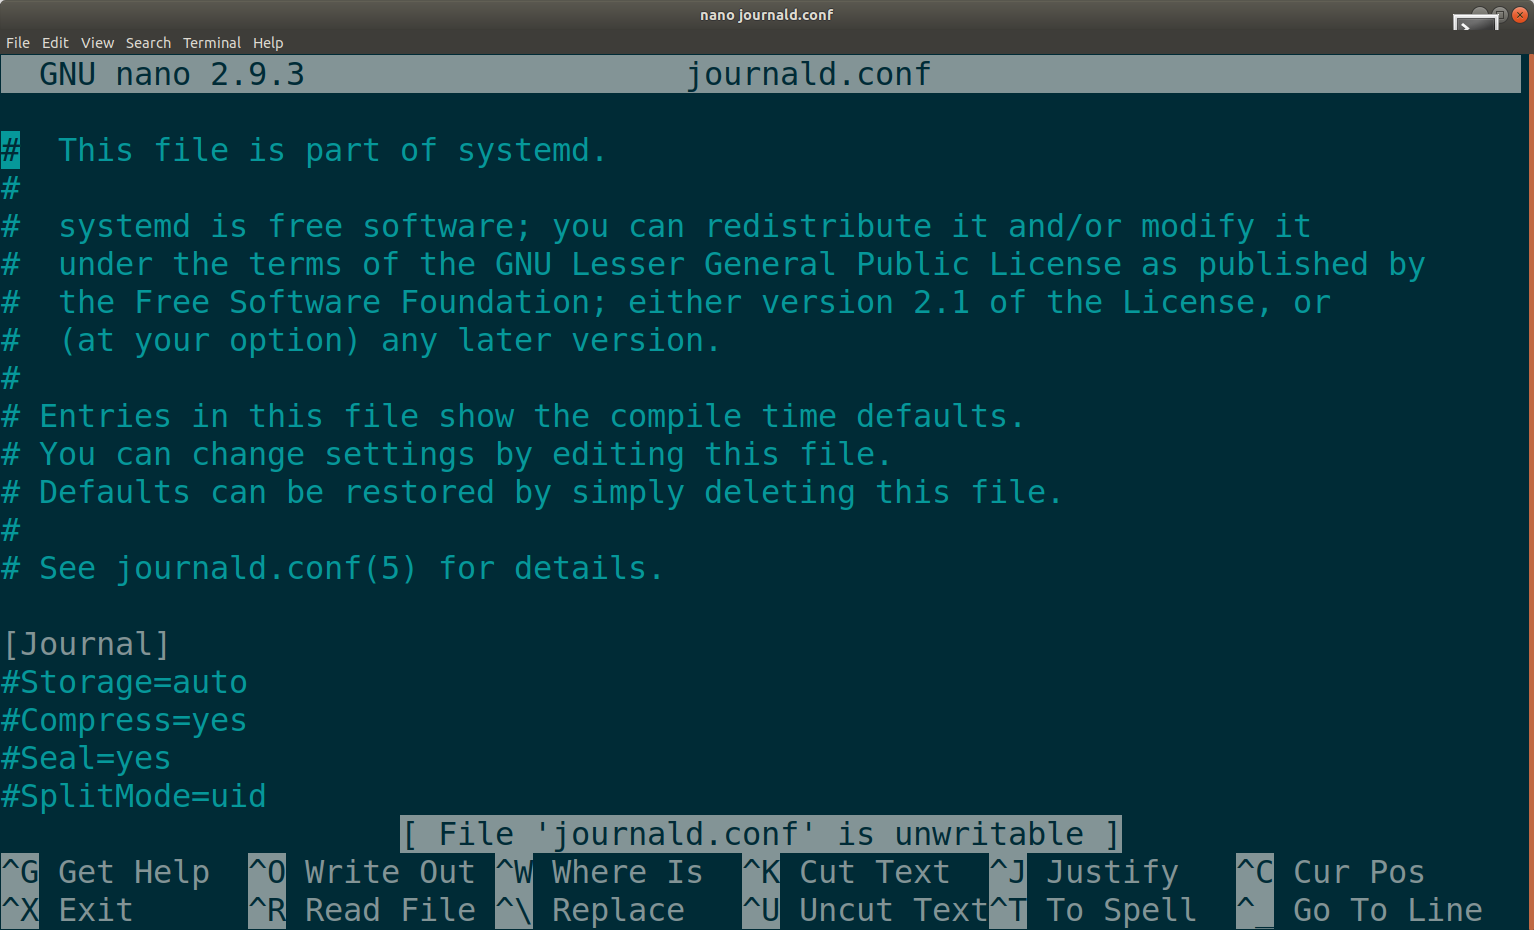 How to quit vim / nano / any text editor on Linux